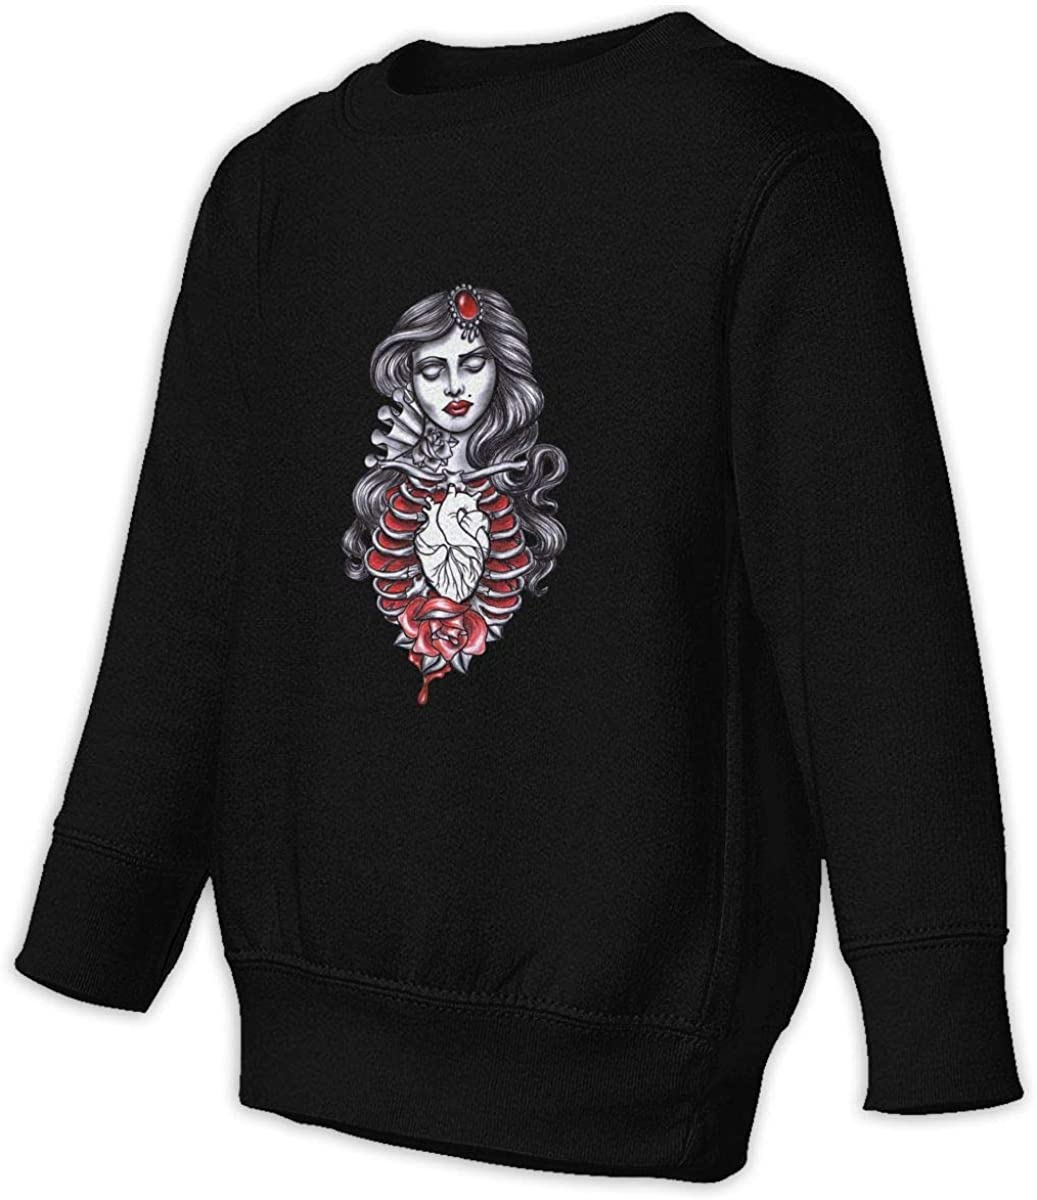 Living Dead Girl Boys Girls Pullover Sweaters Crewneck Sweatshirts Clothes for 2-6 Years Old Children